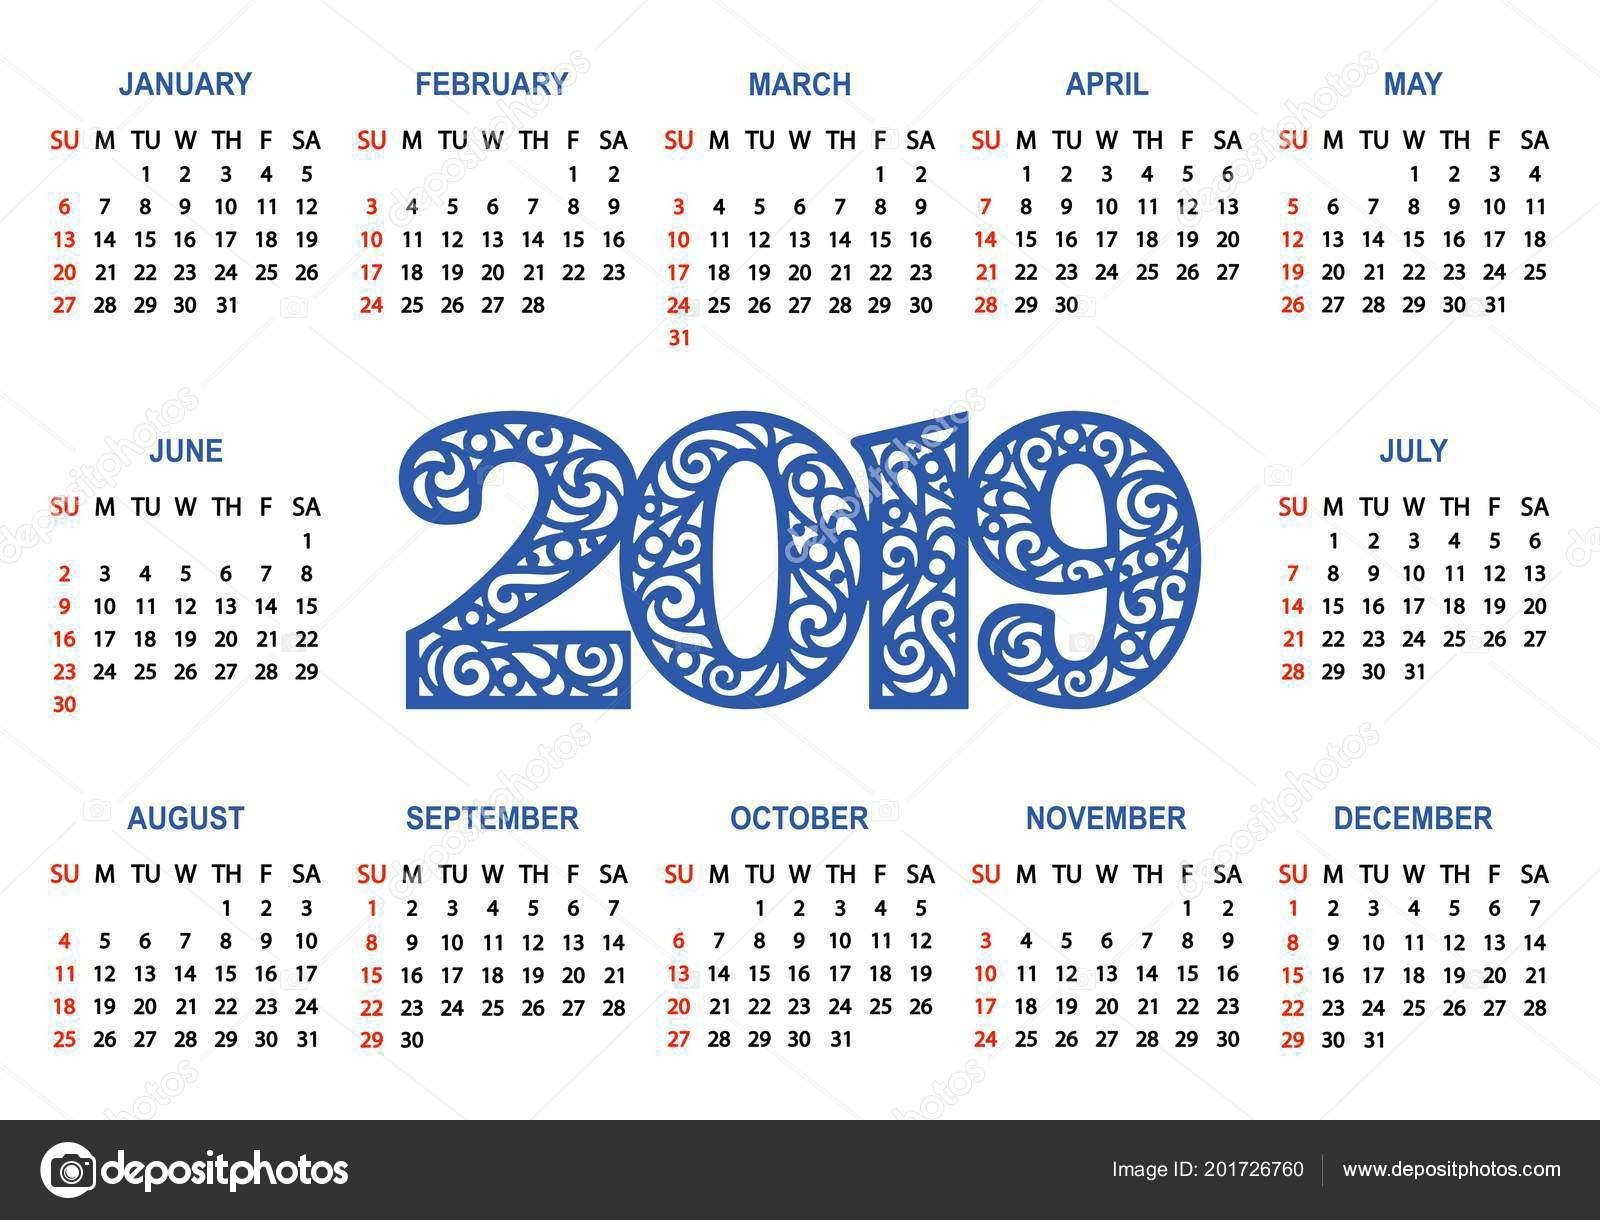 Calendario Julio 2020 Colombia Más Actual Es Calendario 2019 Con Festivos Usa Of Calendario Julio 2020 Colombia Más Actual Es Calendario 2019 Con Festivos Usa